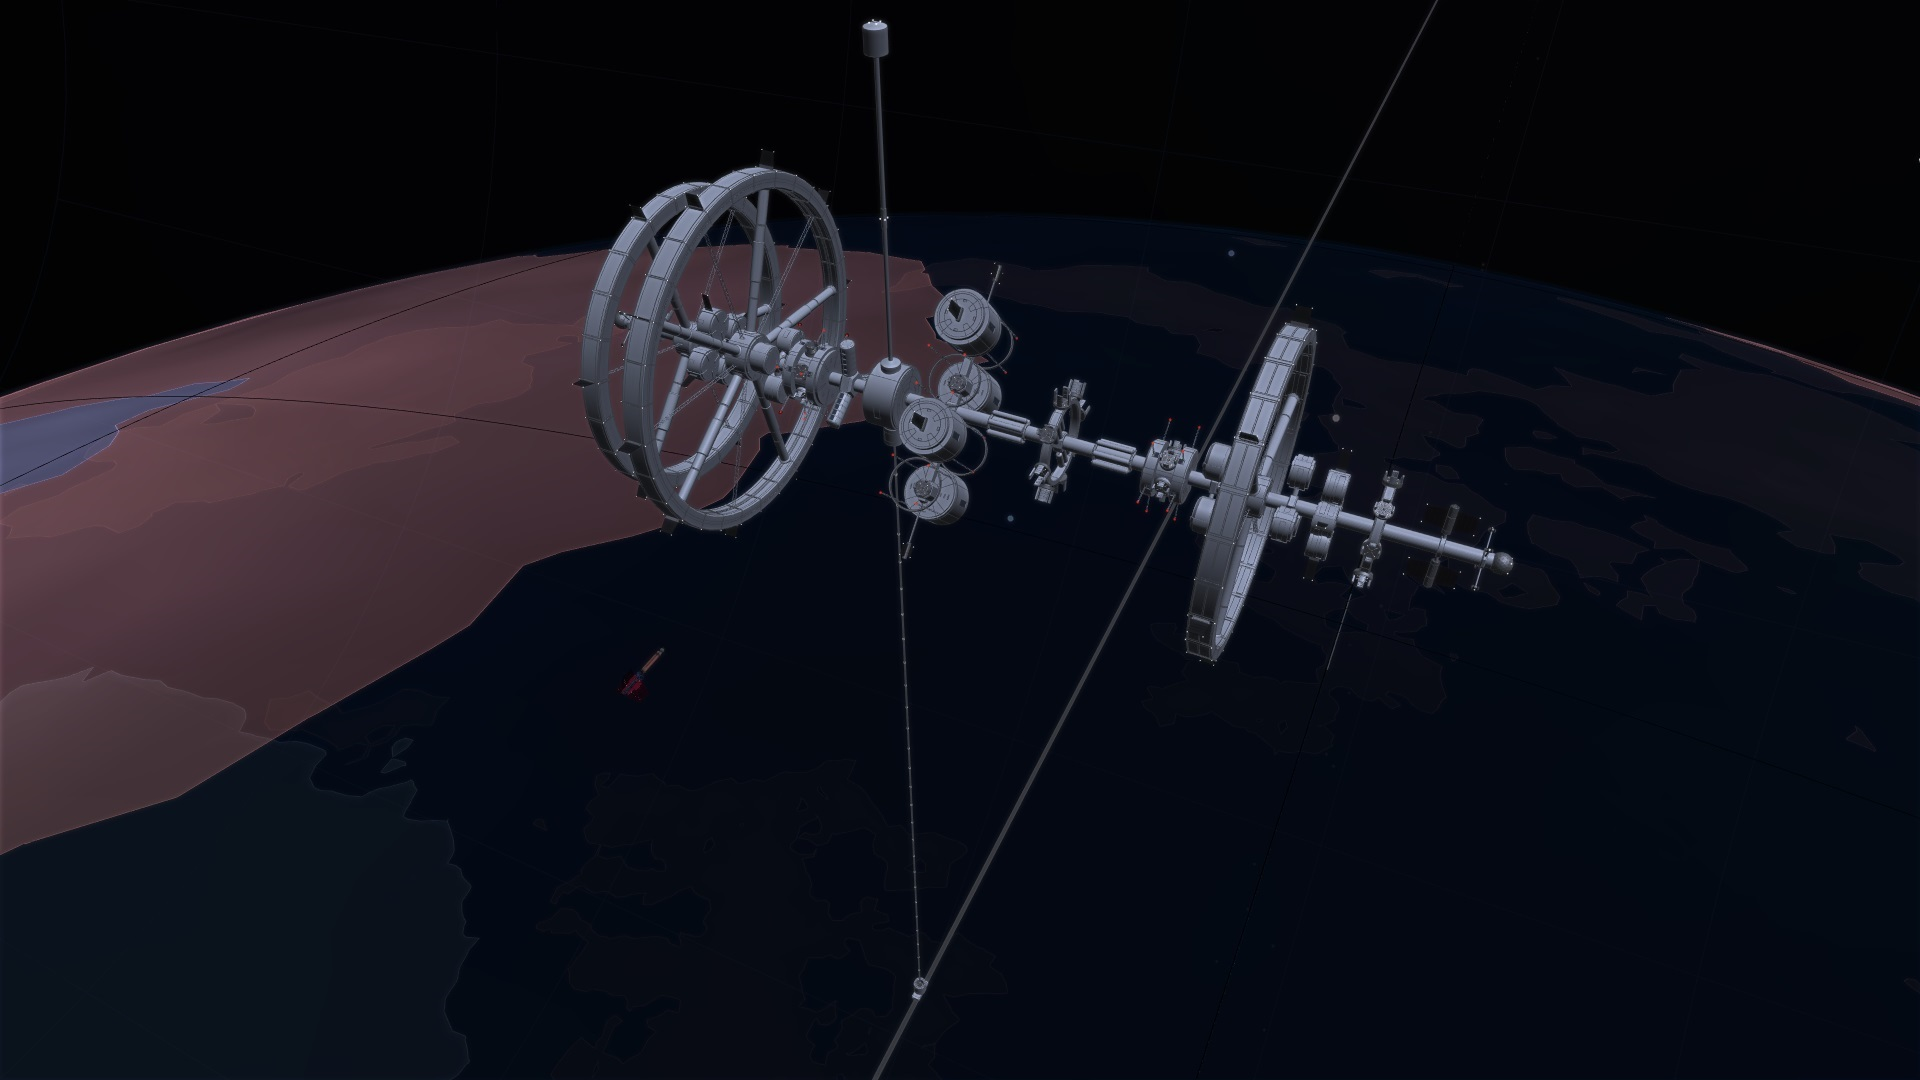 Orbital Ring Station